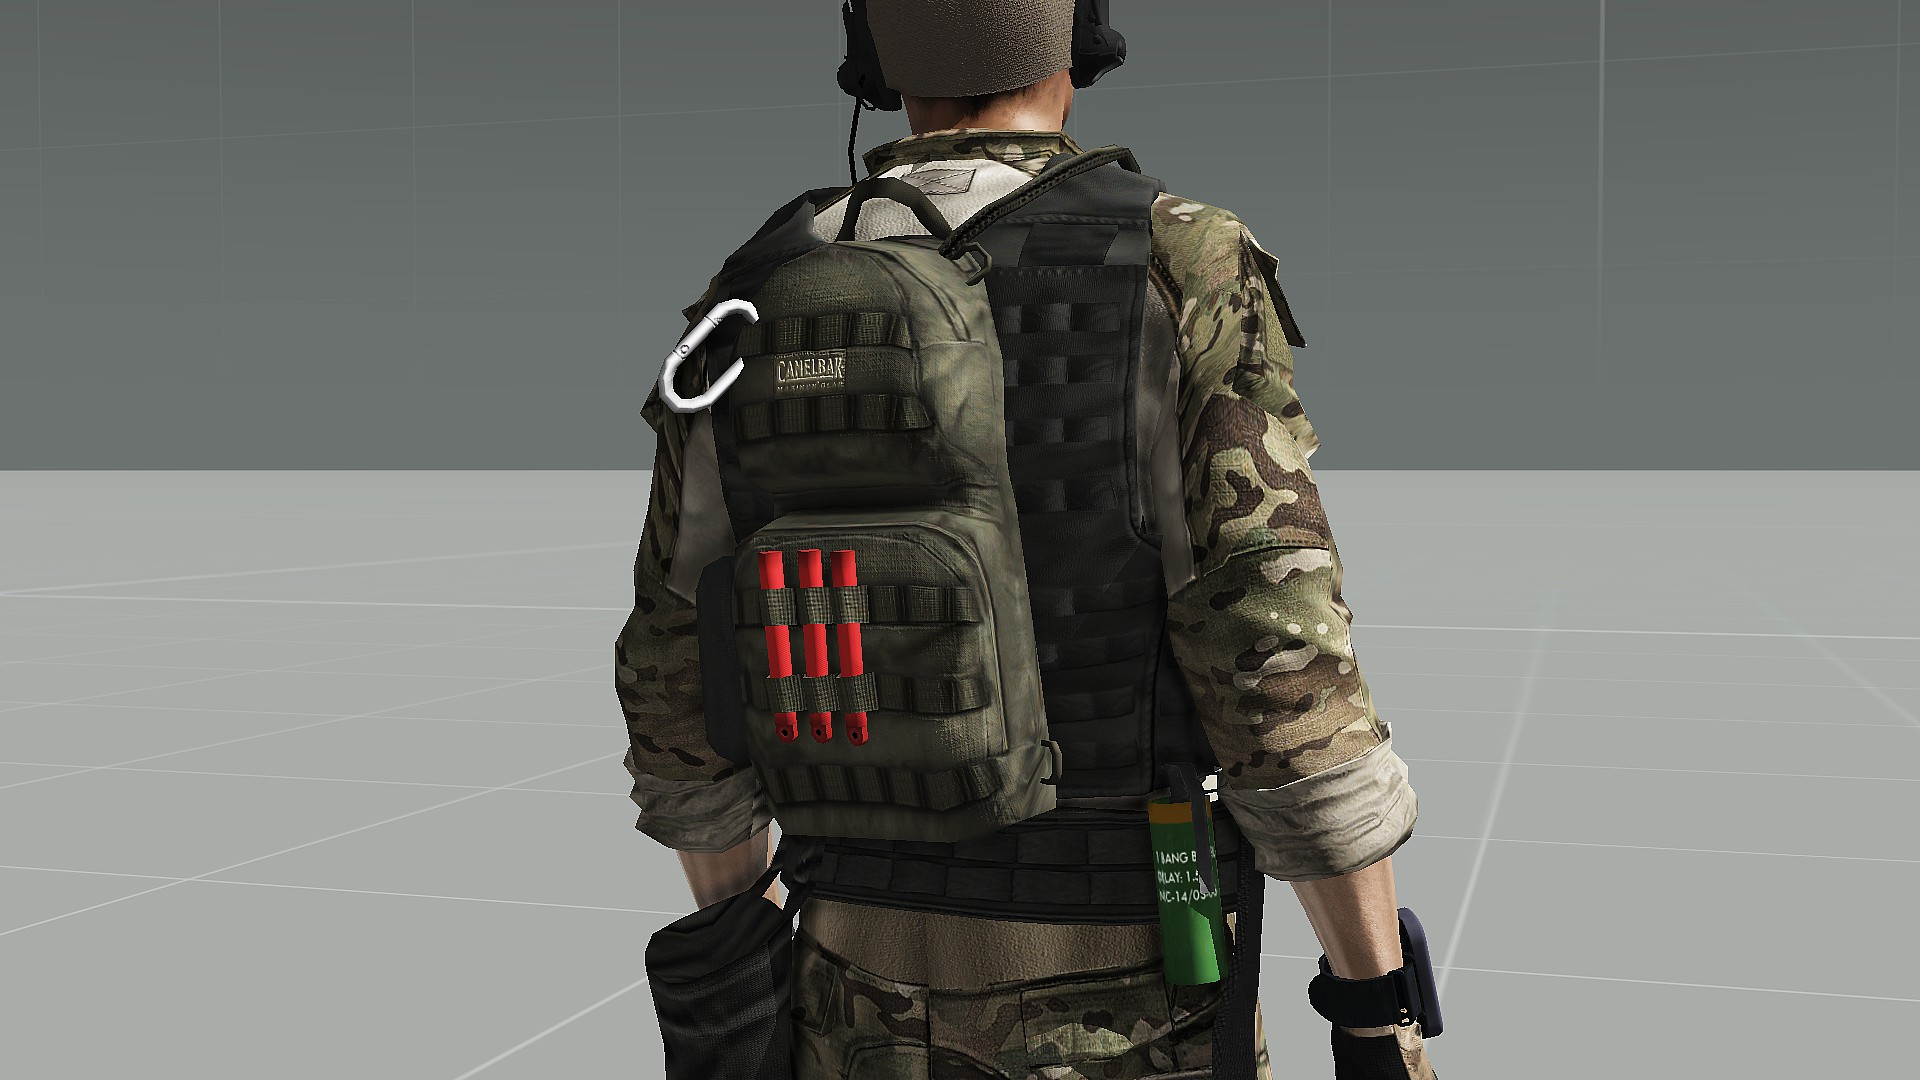 how to open gps in arma 2